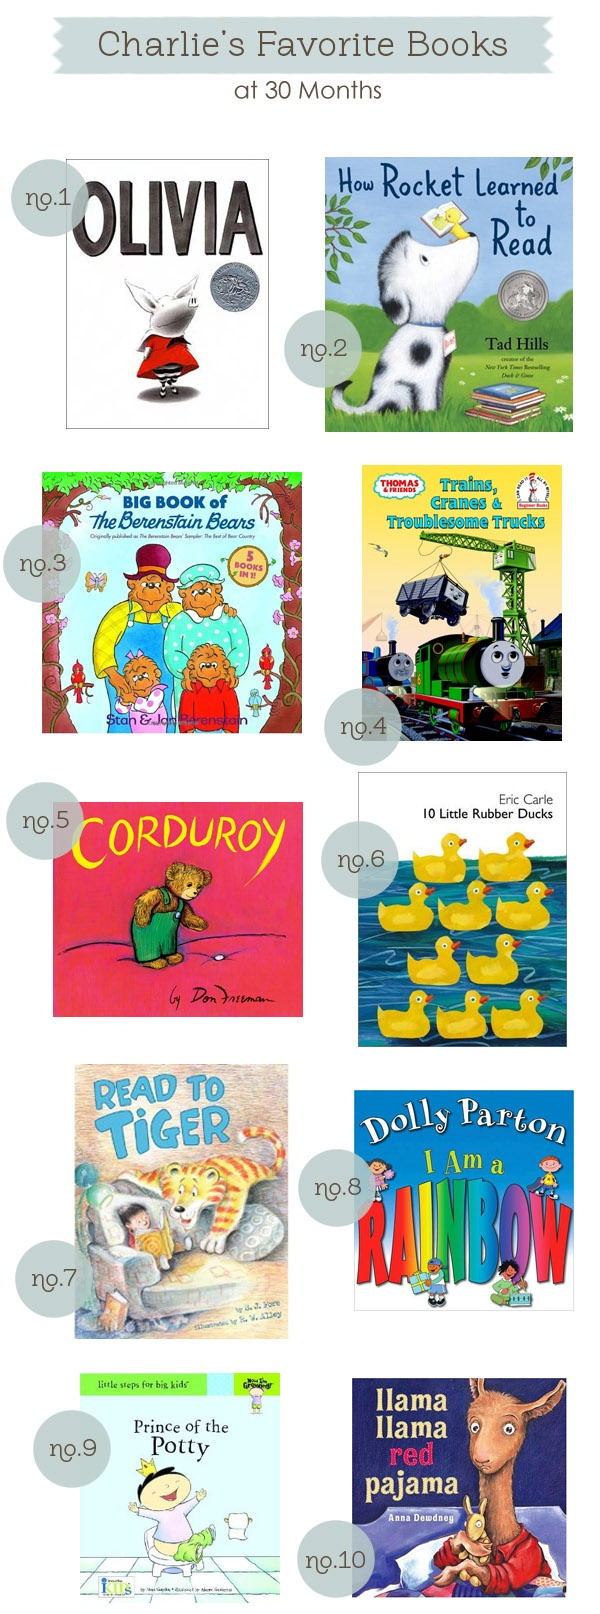 charlie's favorite books for toddlers 2+